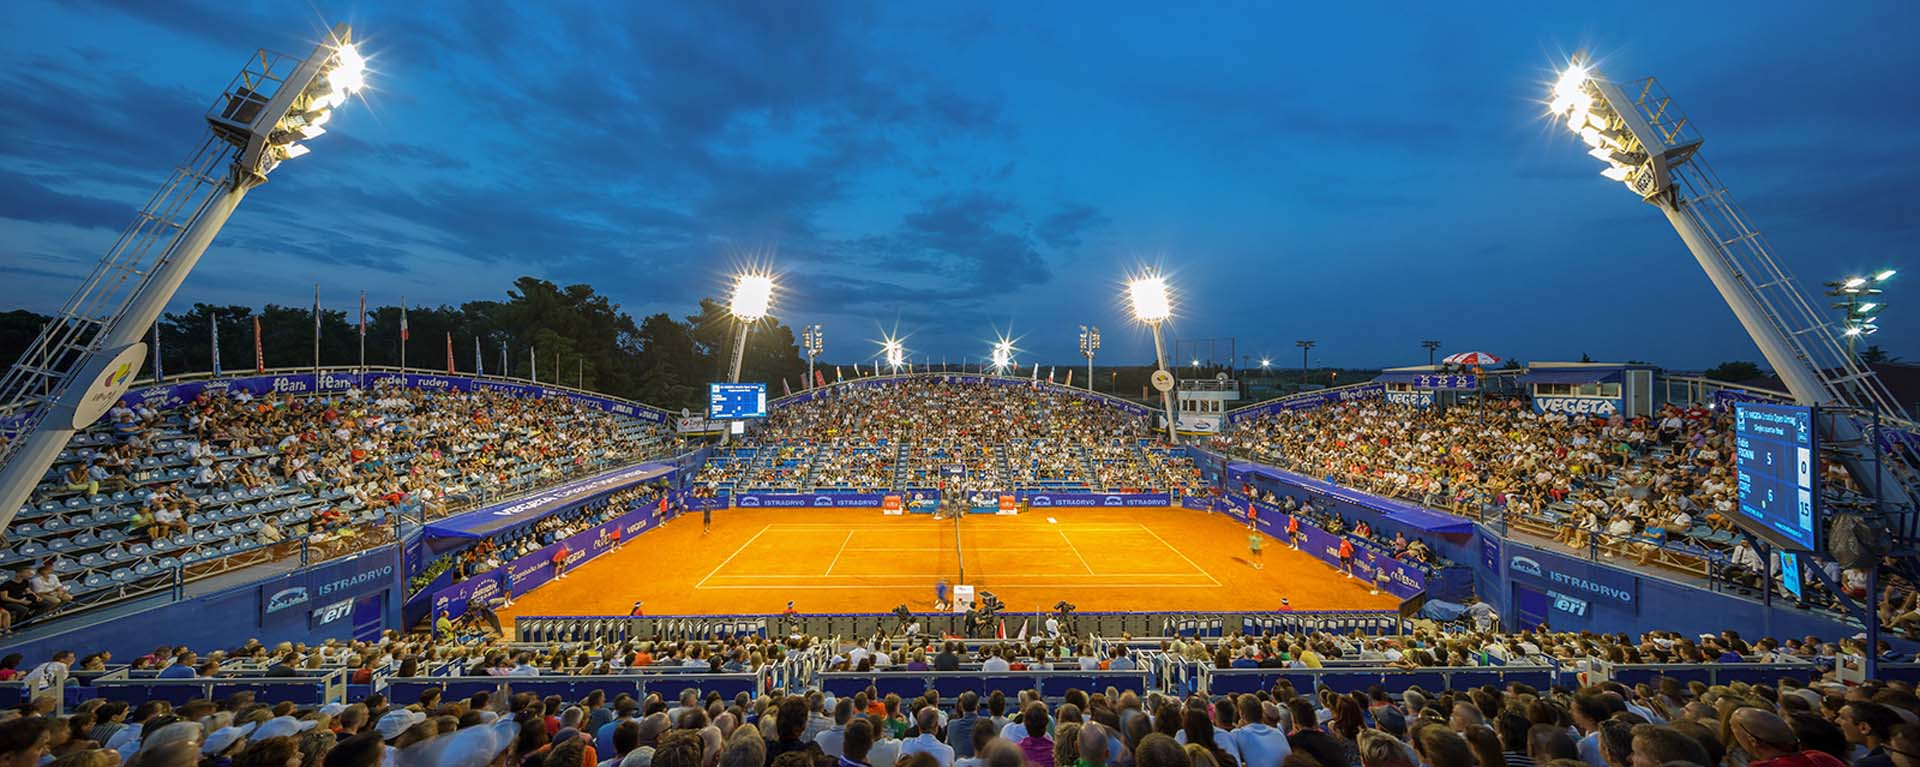 ATP Croatia Open Umag tennis tournament featuring top international players